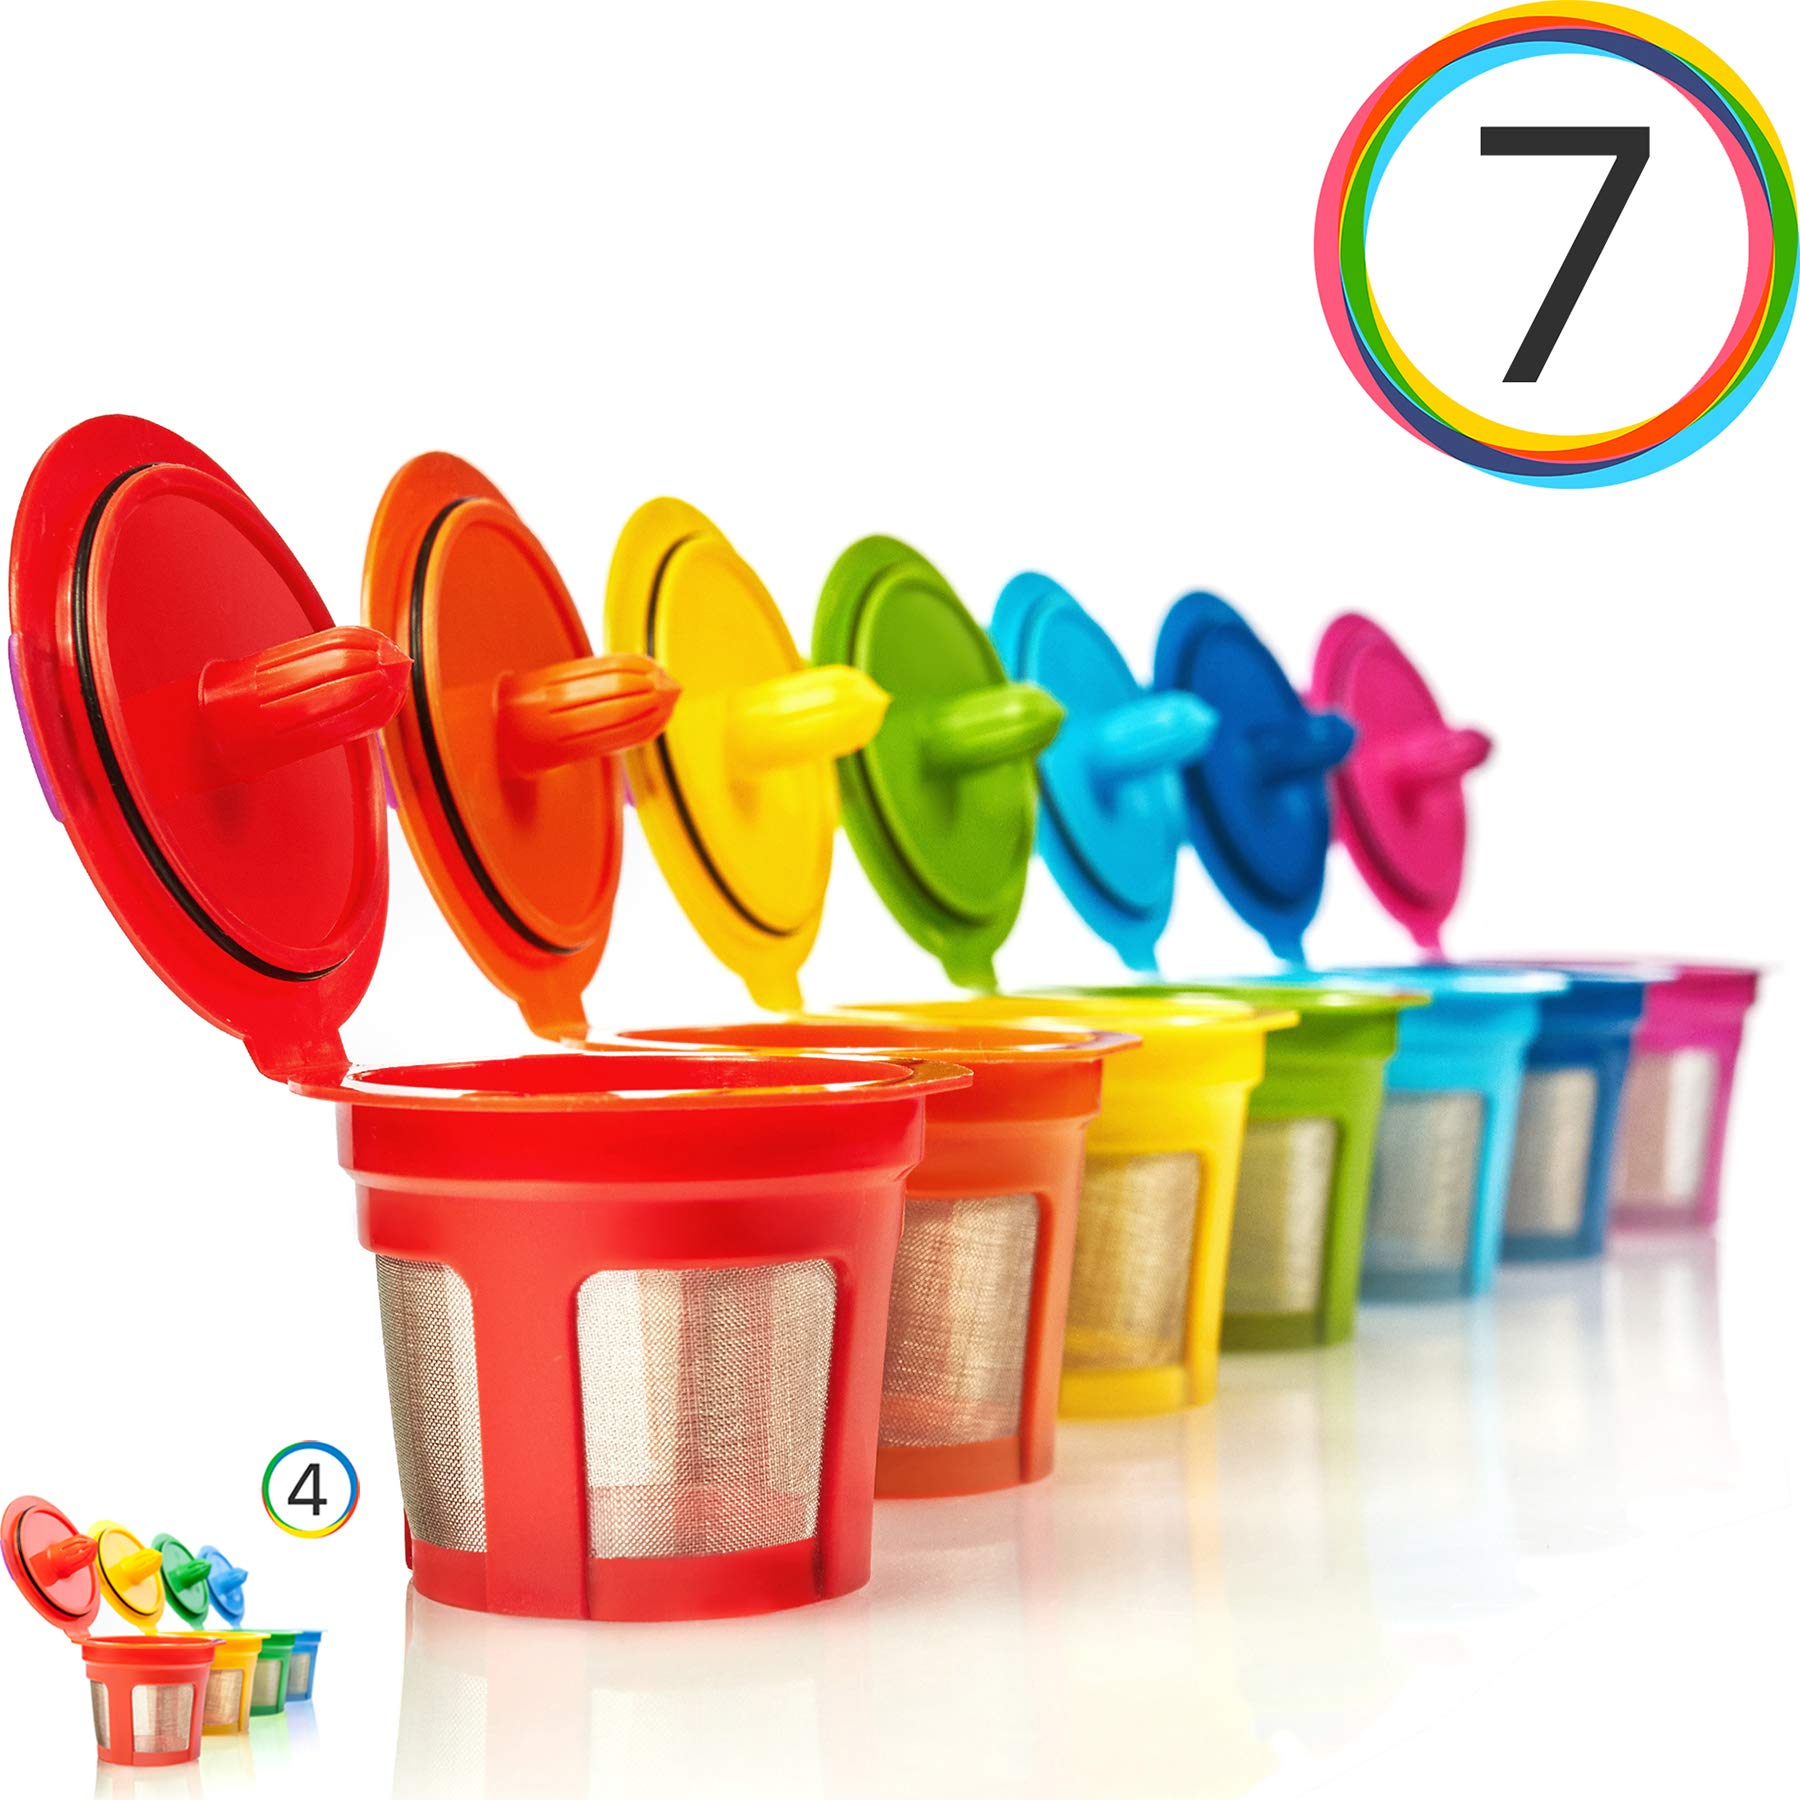 GoodCups 7 Reusable Rainbow Colors K Cups Refillable KCups Coffee Filters for Keurig 2.0, K200, K250, K300, K350, K400, K450, K460, K500, K550, K560 and 1.0 Brewers by GoodCups®